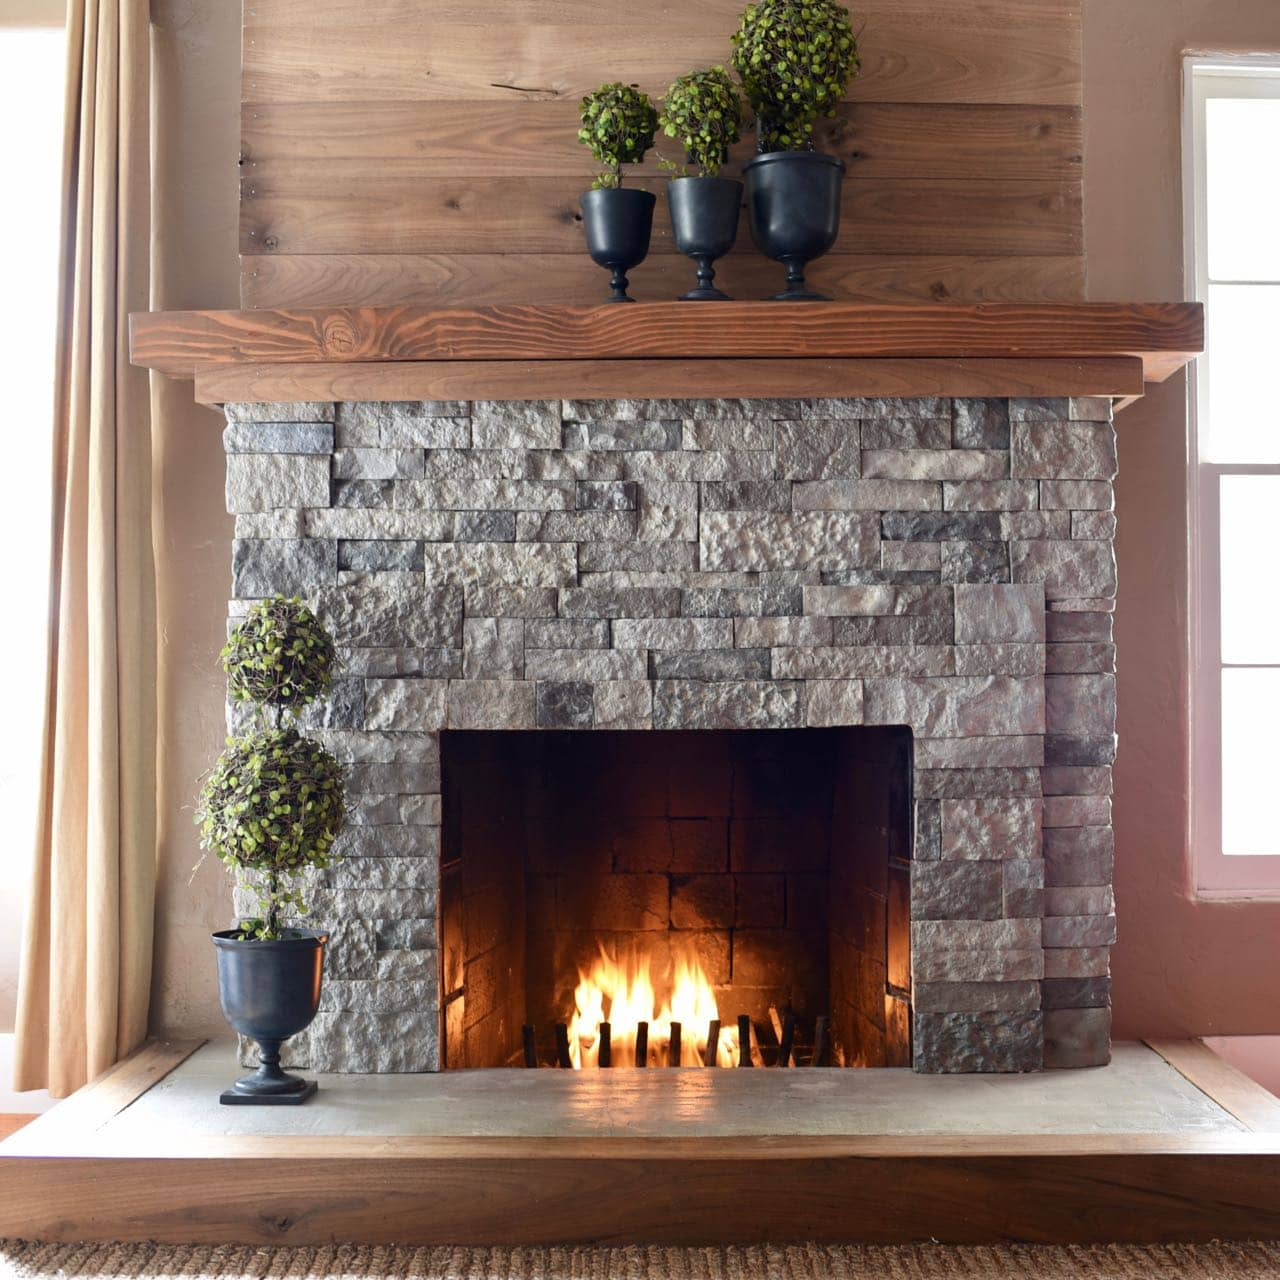 How To Build A Brick Fireplace Pictures How To Build An Outdoor Stacked Stone Fireplace | HGTV Brick Outdoor Fireplace Plans How To Build Brick Fireplace